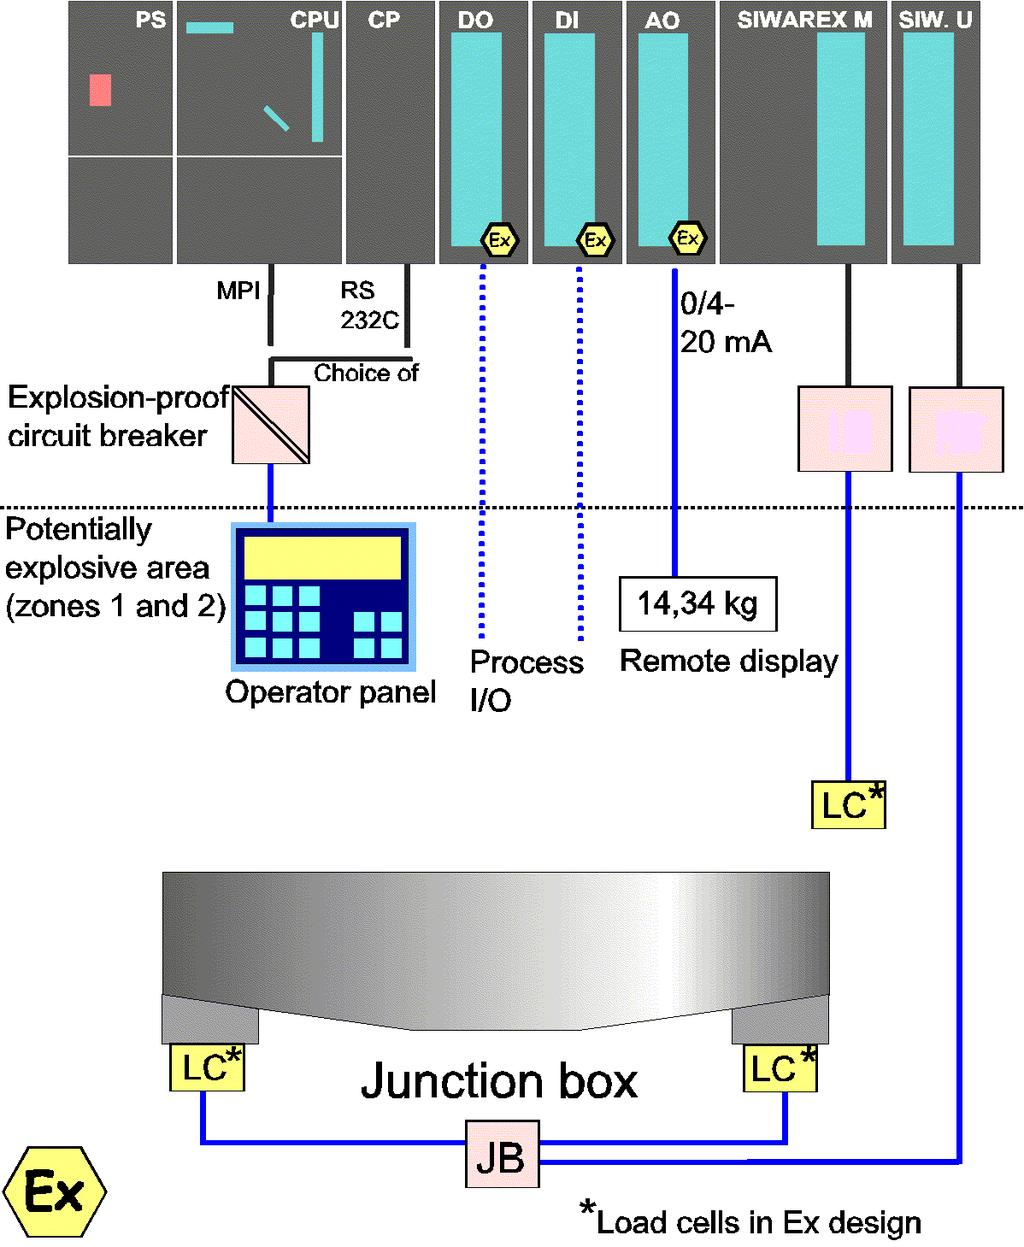 Siwarex U One And Two Channel Model Preface Contents System Load Cell Interface Circuit Overview Exi Ib Intermediate Box Ex I Jb